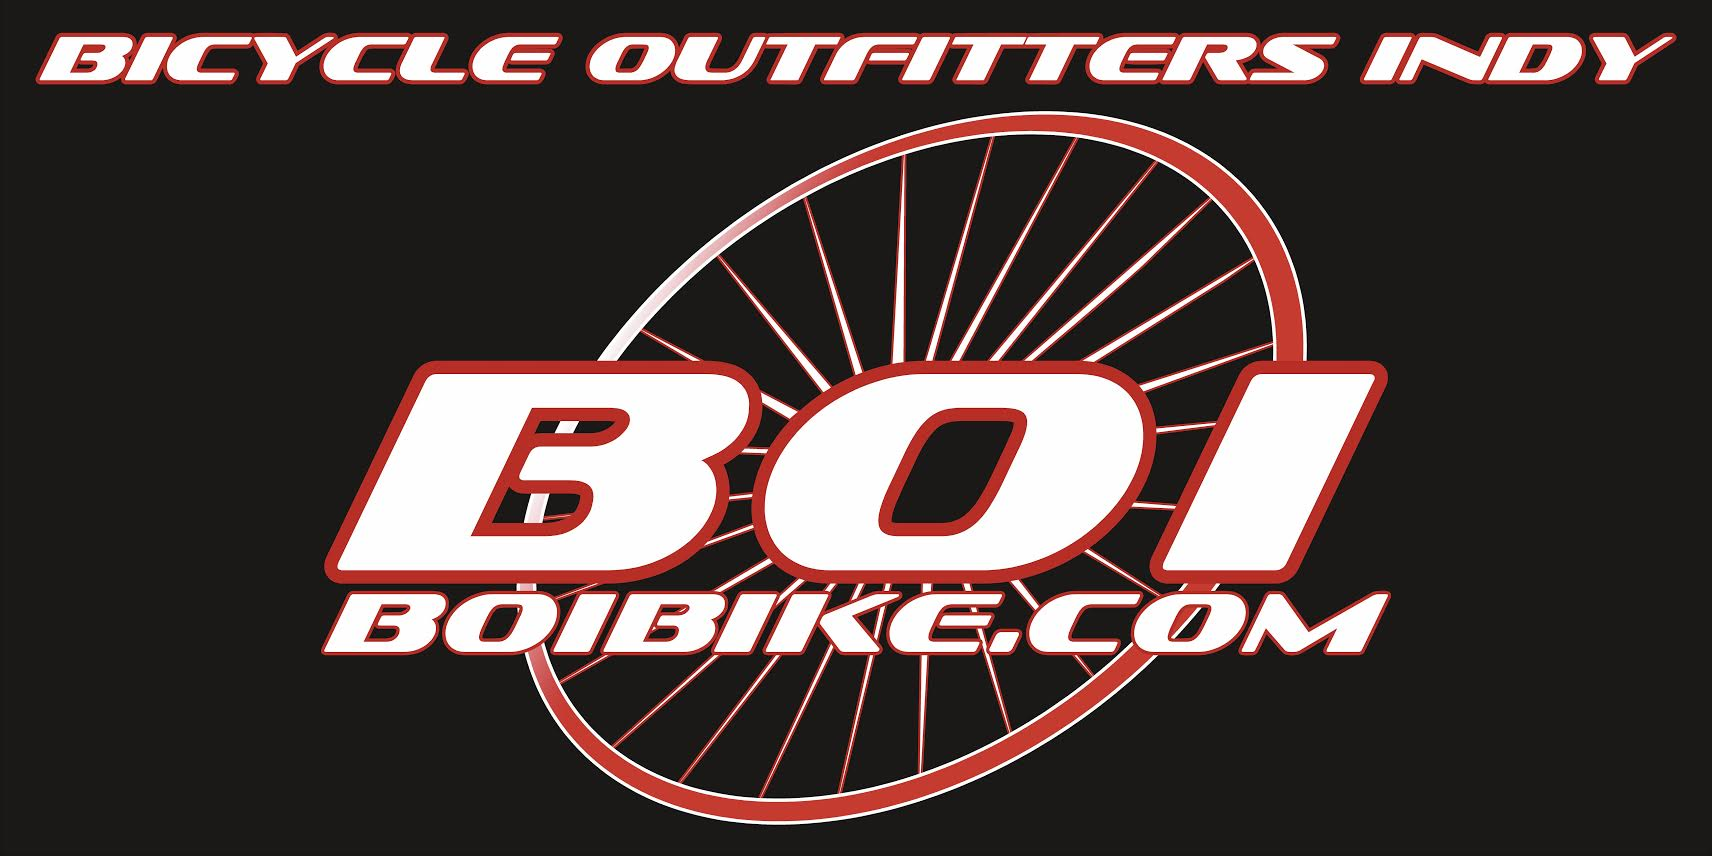 Bicycle Outfitters Indy Logo